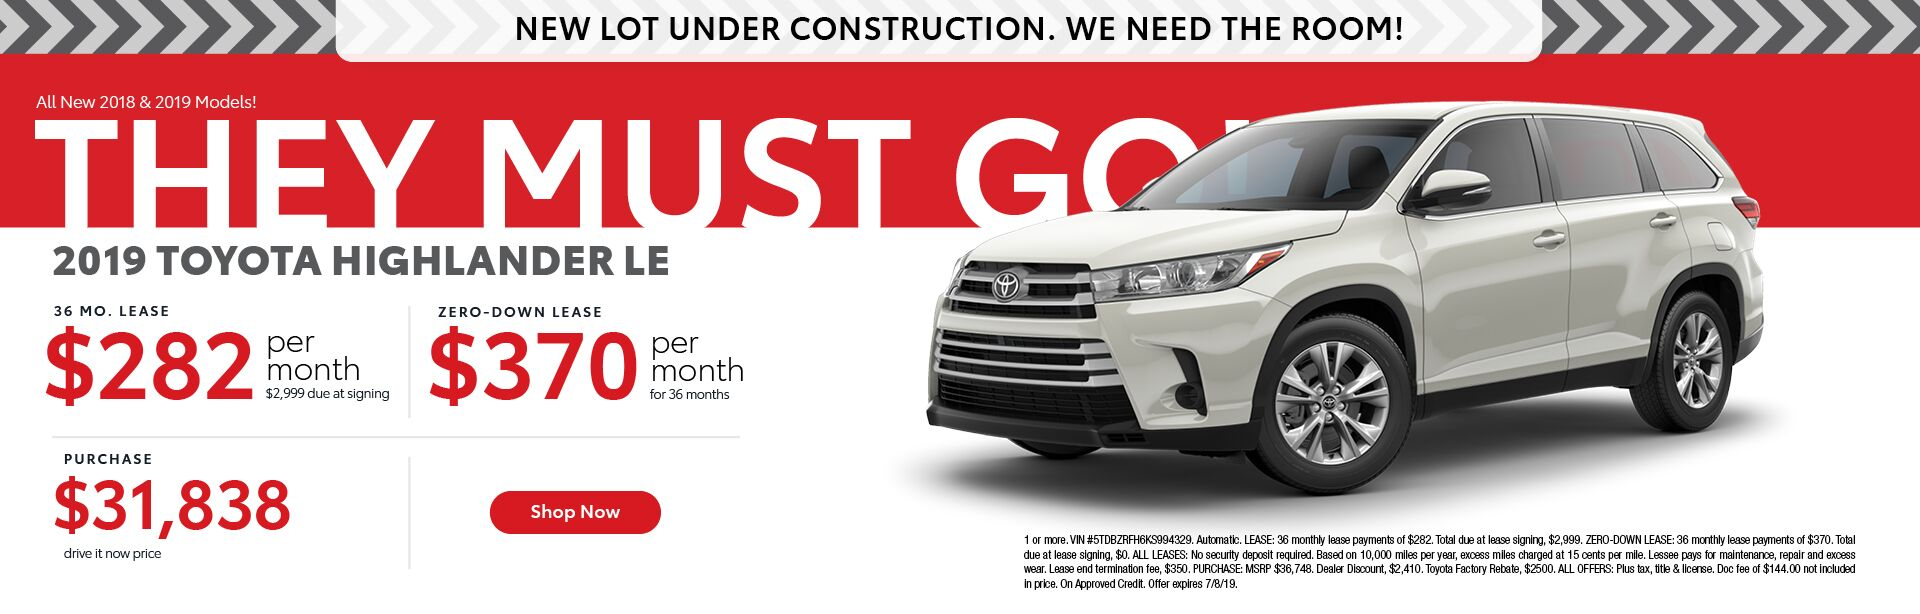 2019 Toyota Highlander LE -  36 month lease for $282 with $2,999 due at signing  - zero-down lease $370 per month for 36 months - purchase price $31,838